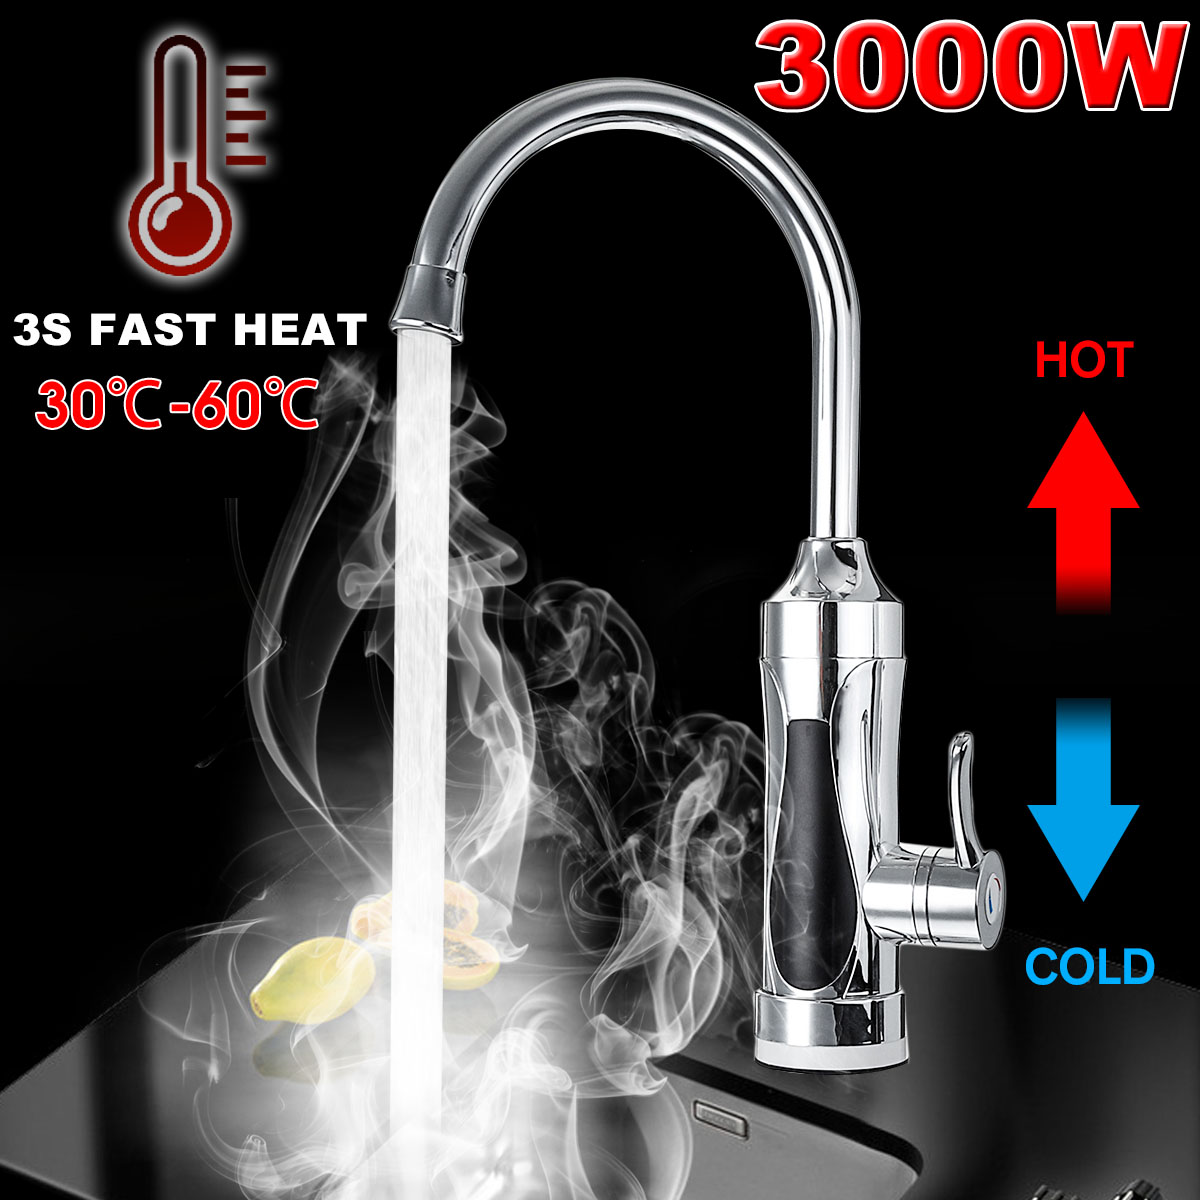 3S Electric Kitchen Water Heater Tap 3000WInstant Hot Water Faucet Heater Heating Faucet Tankless Instantaneous Water Heater